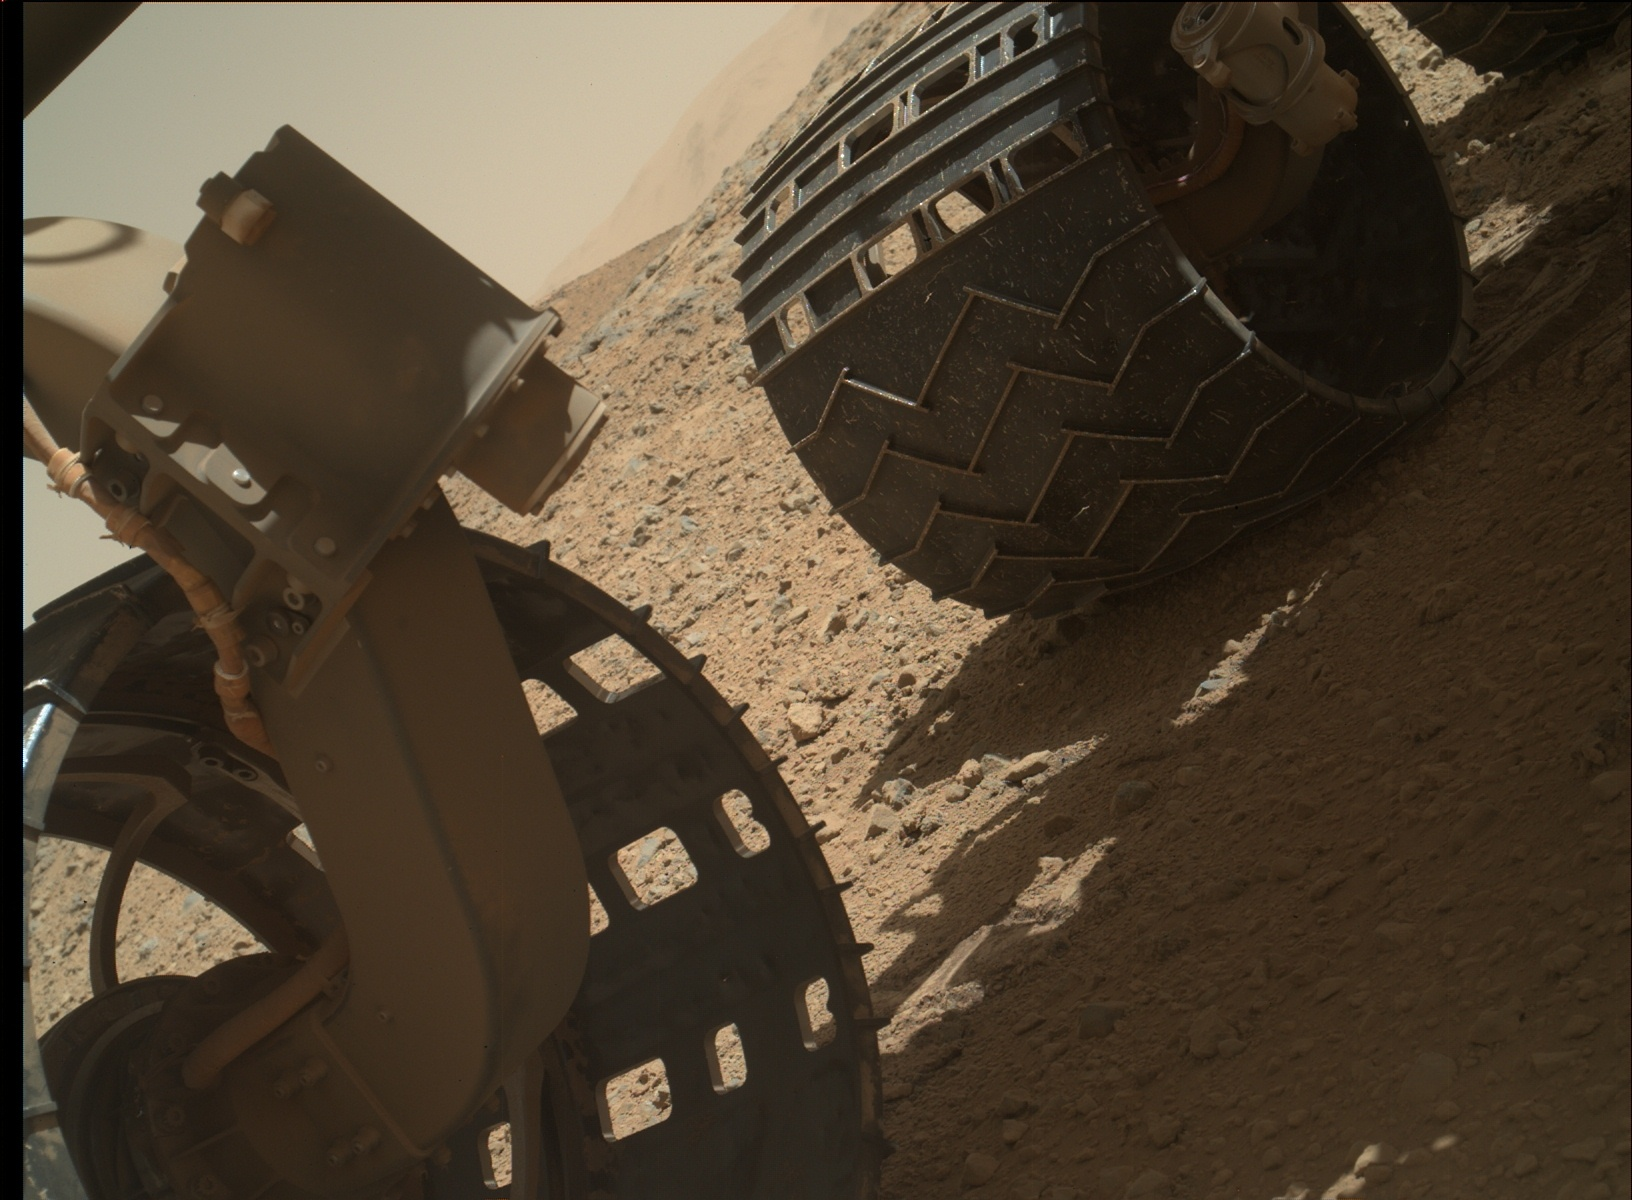 Nasa's Mars rover Curiosity acquired this image using its Mars Hand Lens Imager (MAHLI) on Sol 568